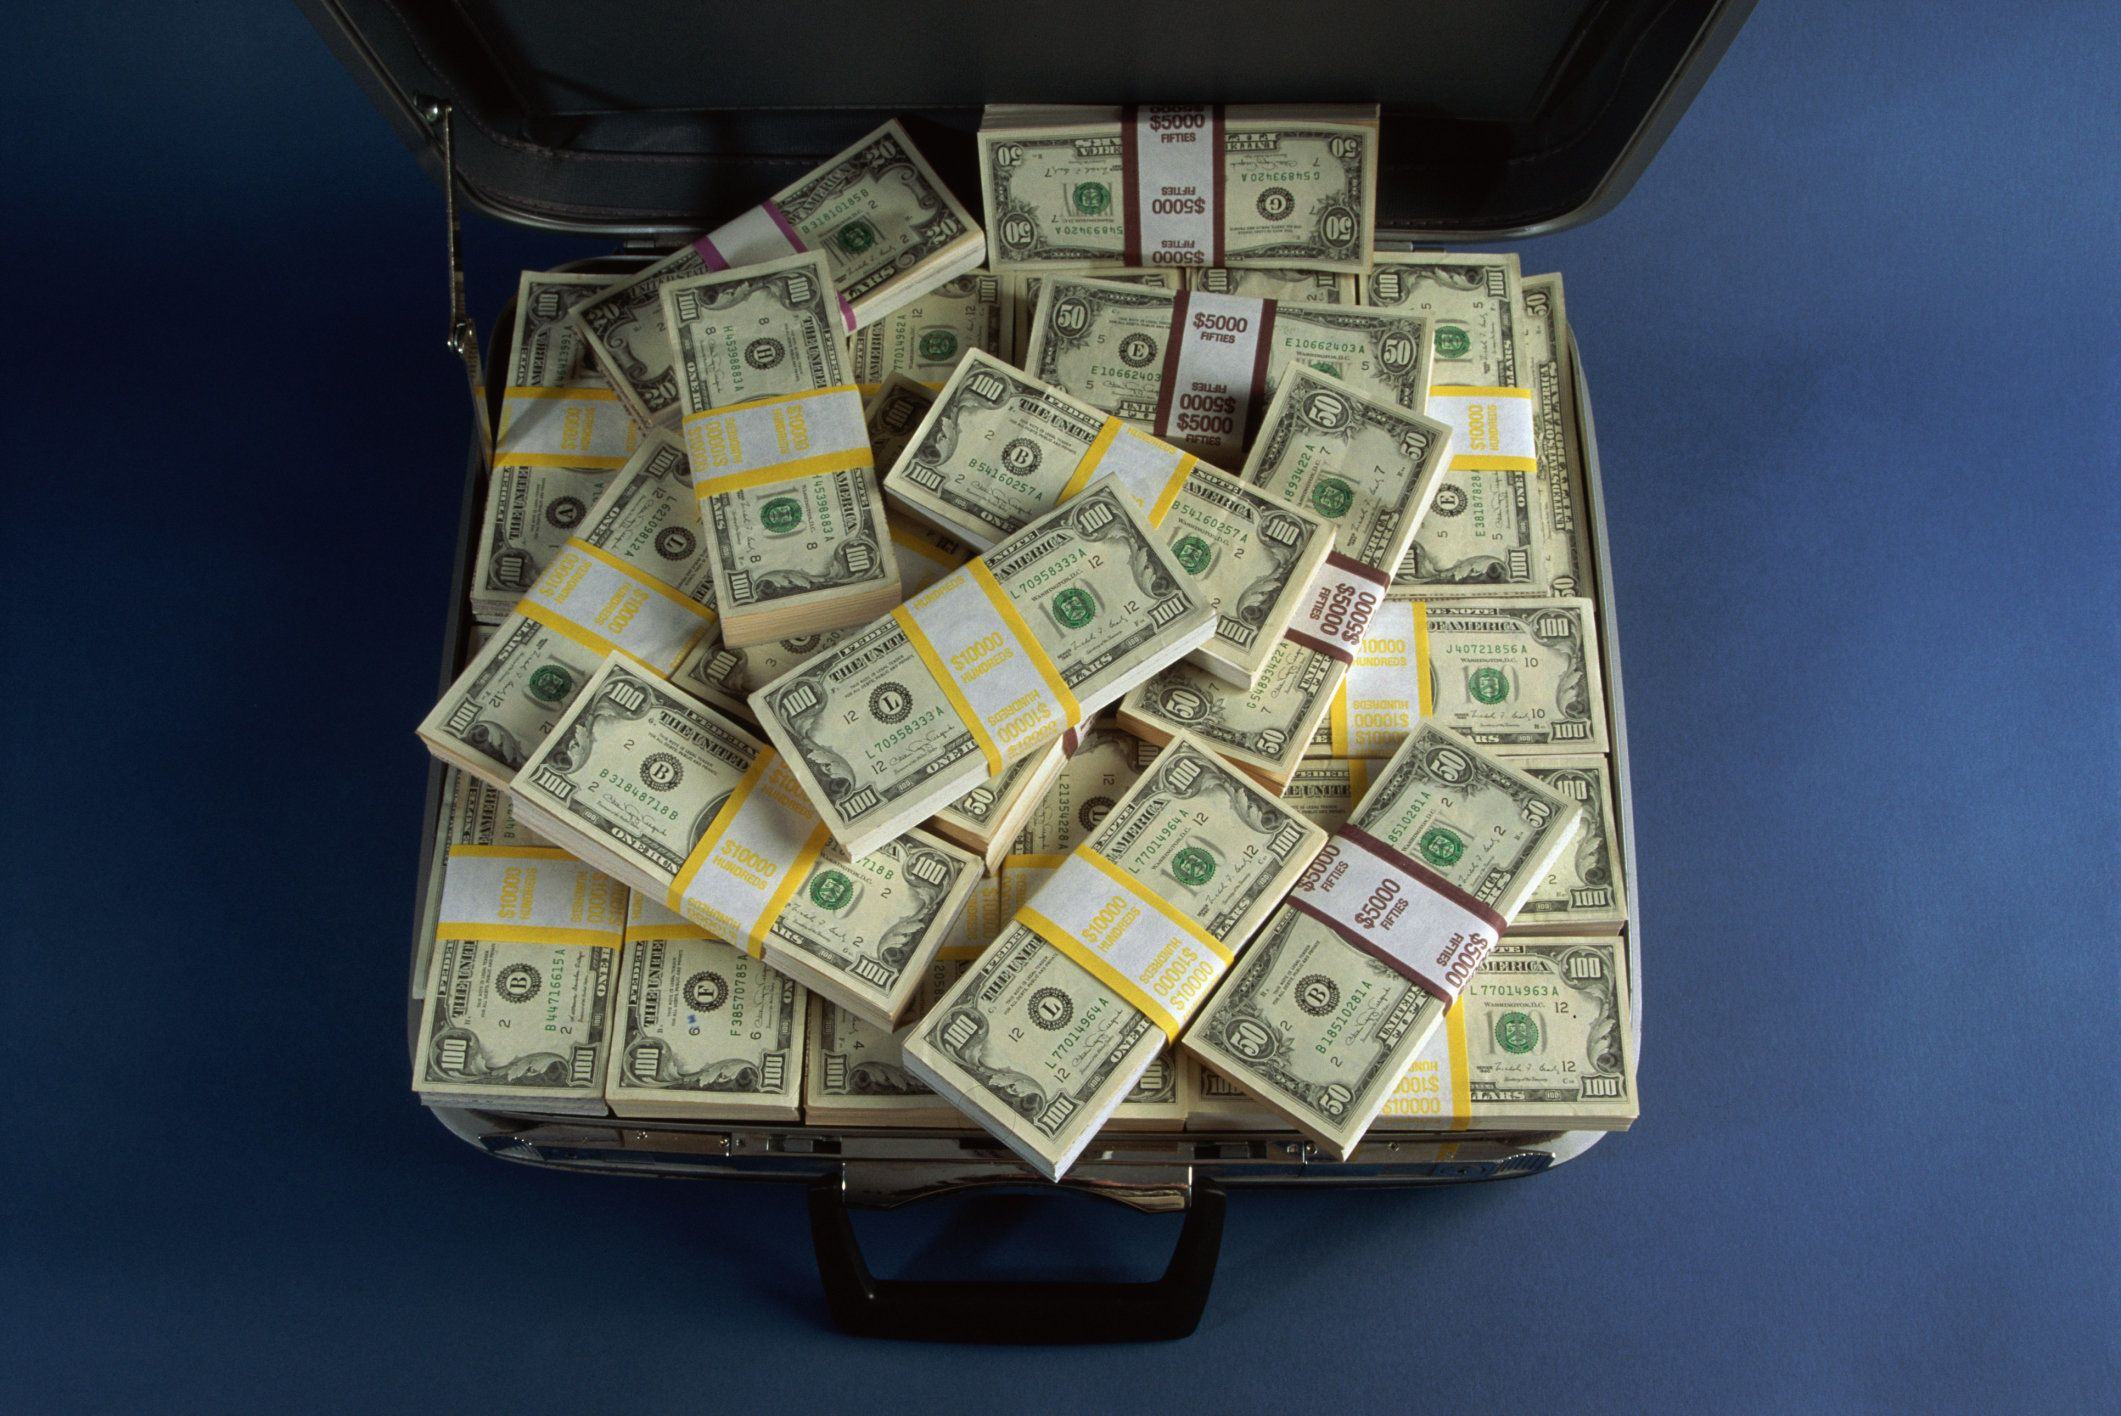 Suitcase filled with US currency notes